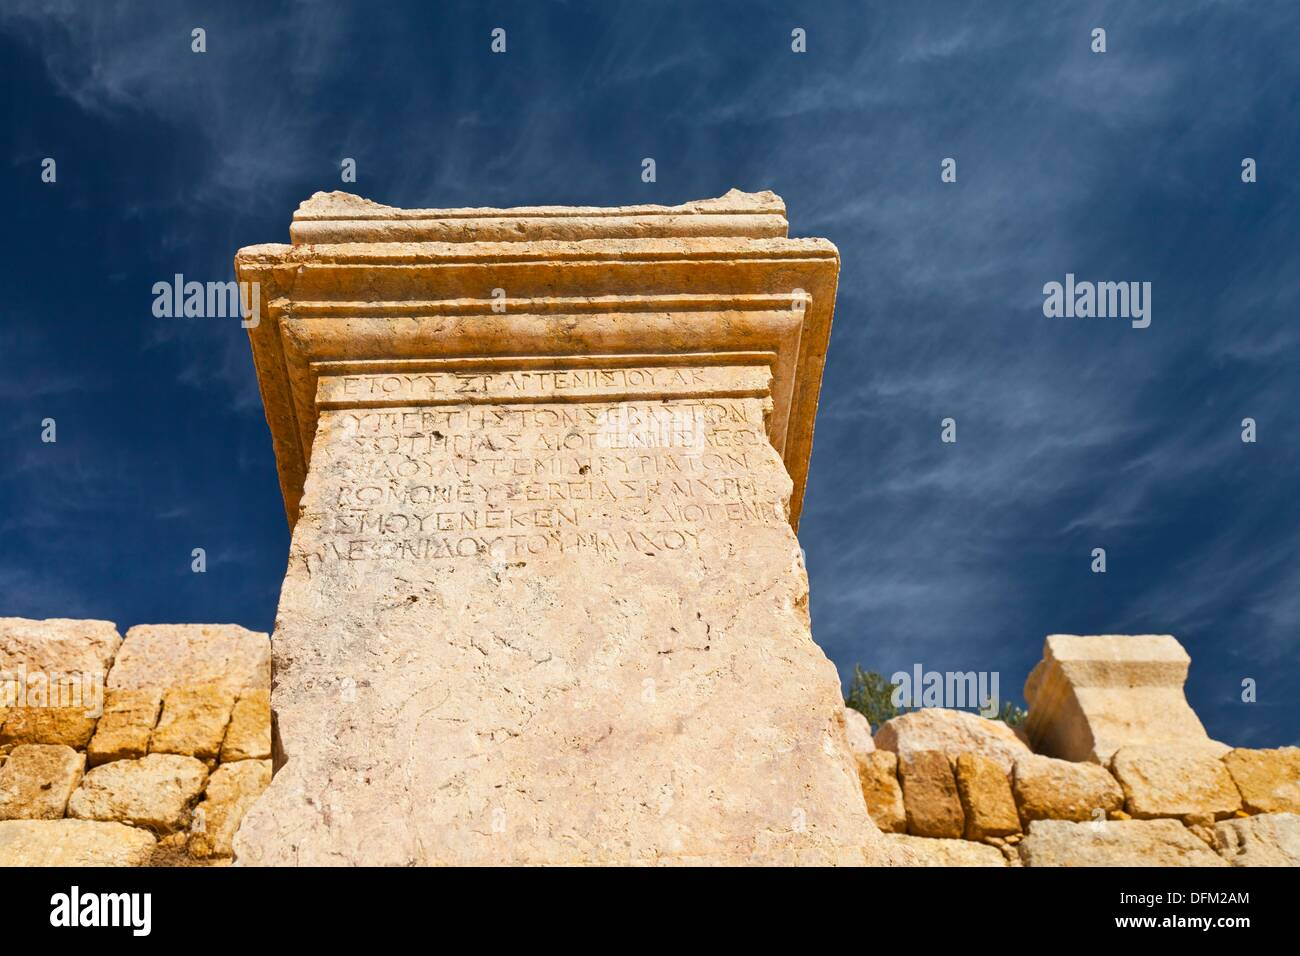 Greek inscription on plinth, Greco-Roman city of Jerash, Jordan, Middle East - Stock Image